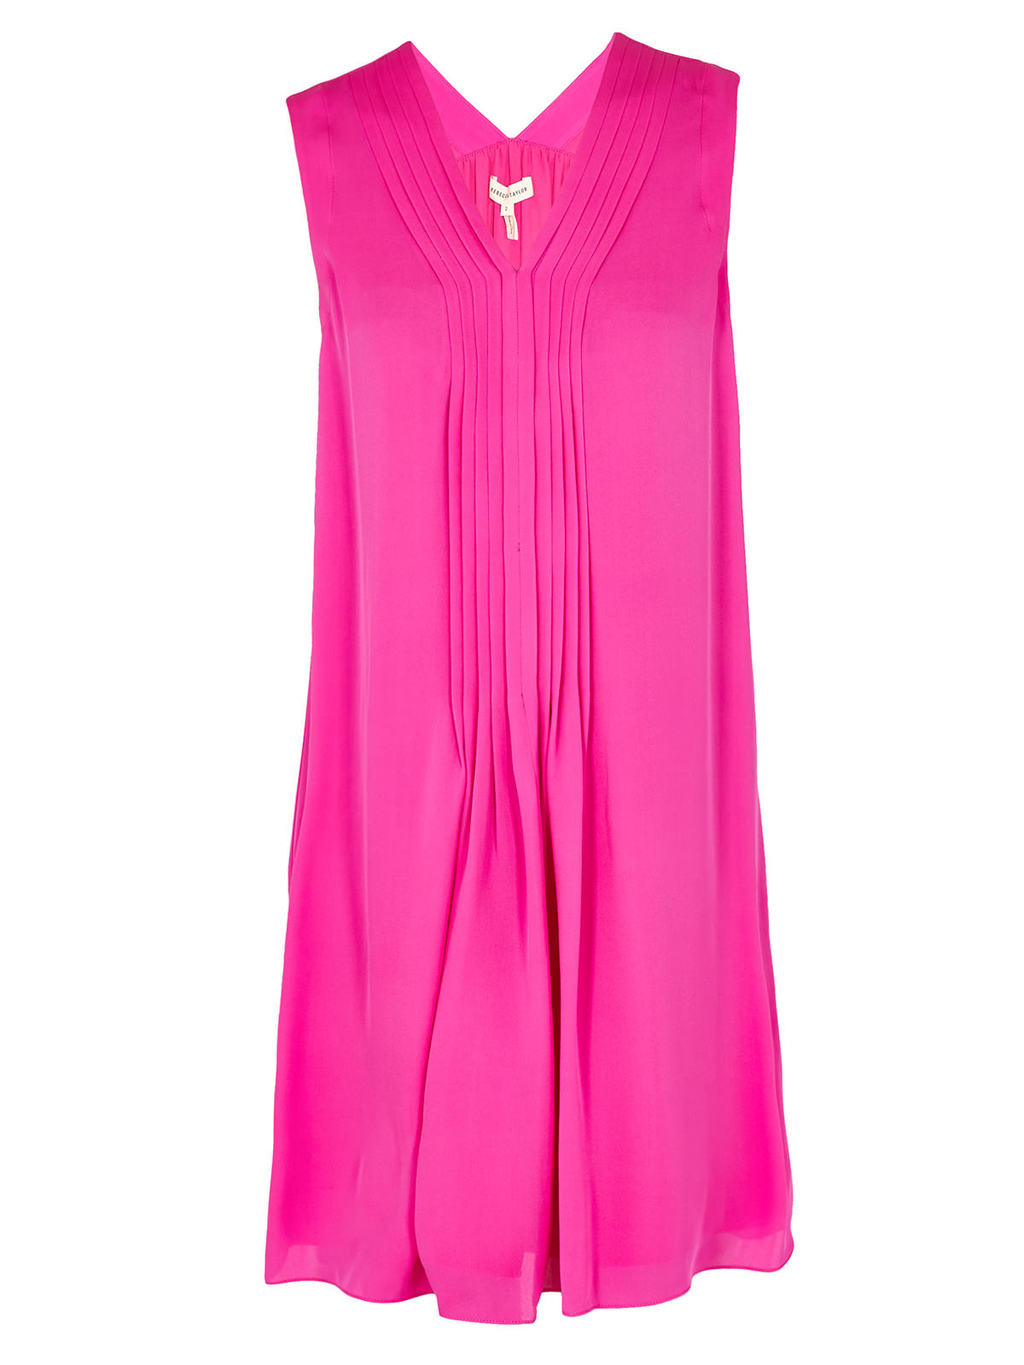 Sleeveless Georgette Dress - style: shift; neckline: v-neck; pattern: plain; sleeve style: sleeveless; predominant colour: hot pink; occasions: evening; length: on the knee; fit: body skimming; fibres: silk - 100%; sleeve length: sleeveless; texture group: silky - light; pattern type: fabric; season: s/s 2016; wardrobe: event